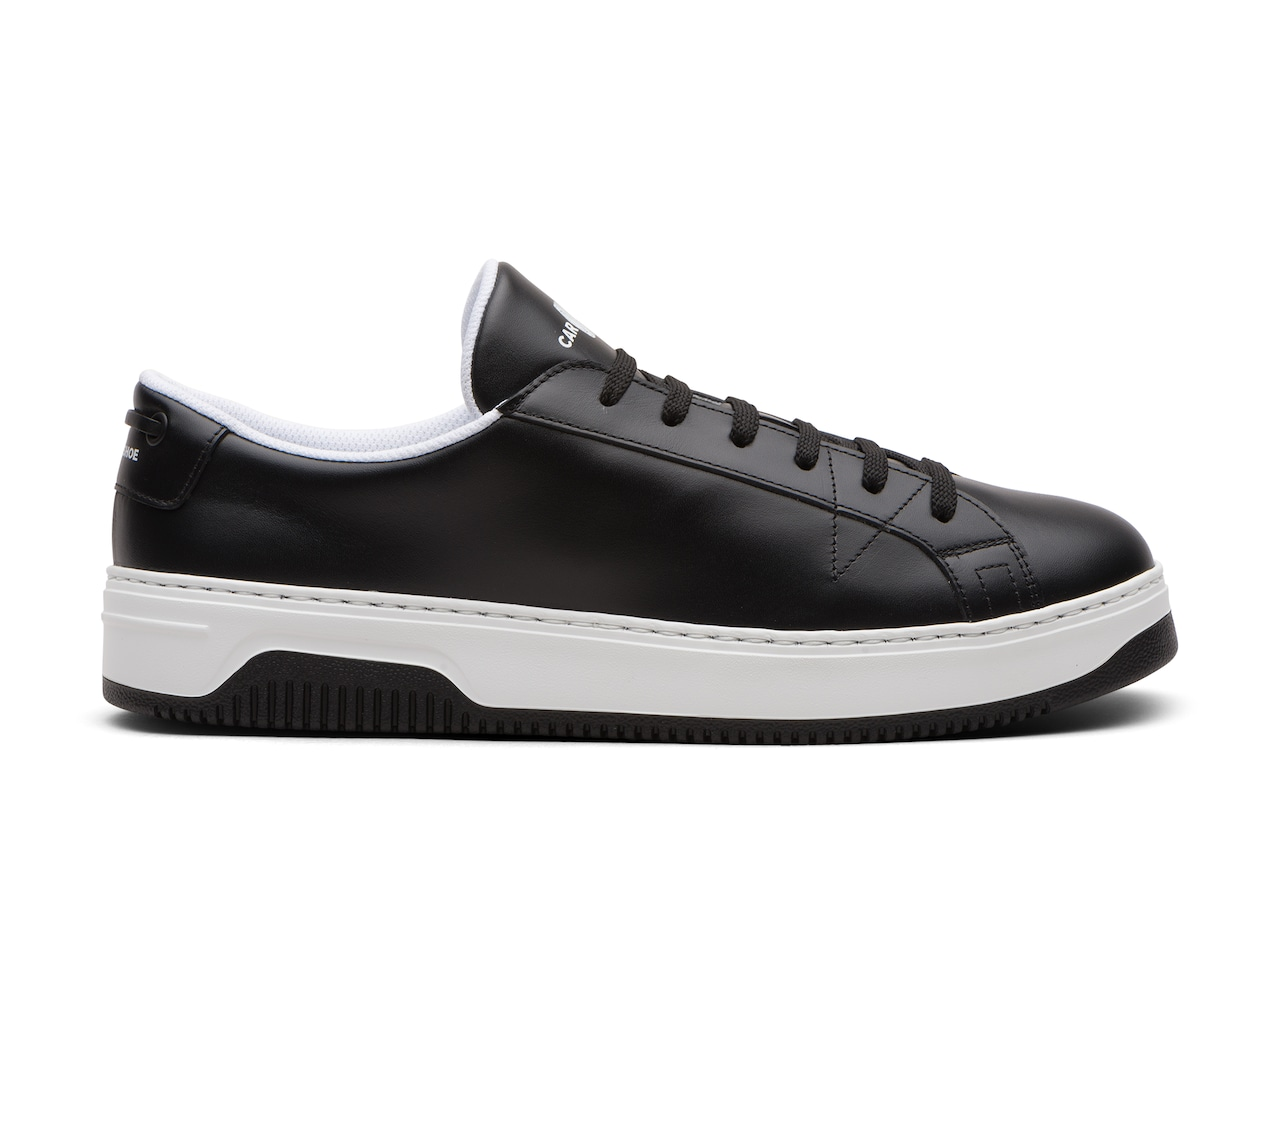 SNEAKERS PELLE MORBIDA NERO